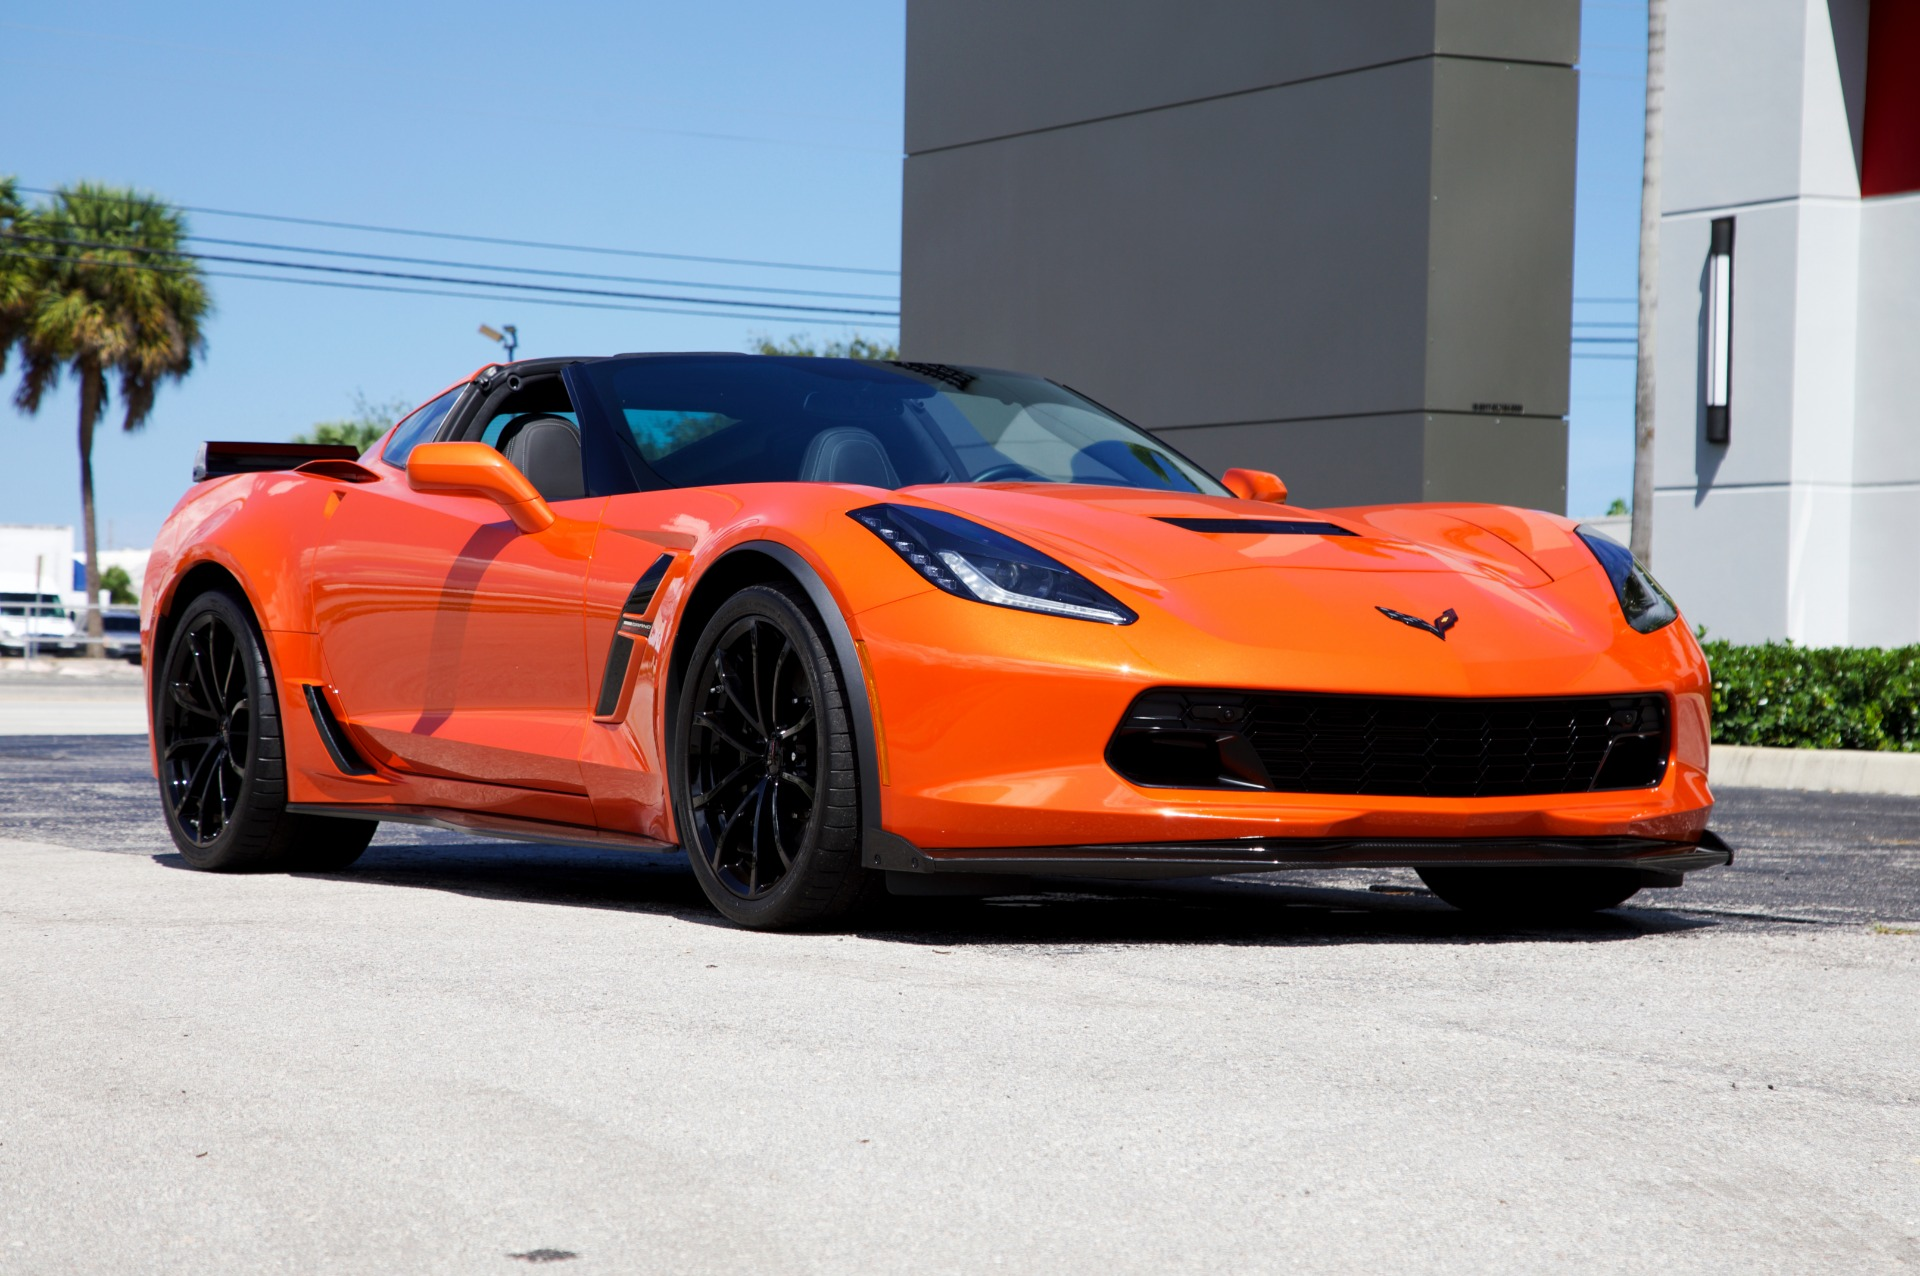 Used-2019-Chevrolet-Corvette-Grand-Sport